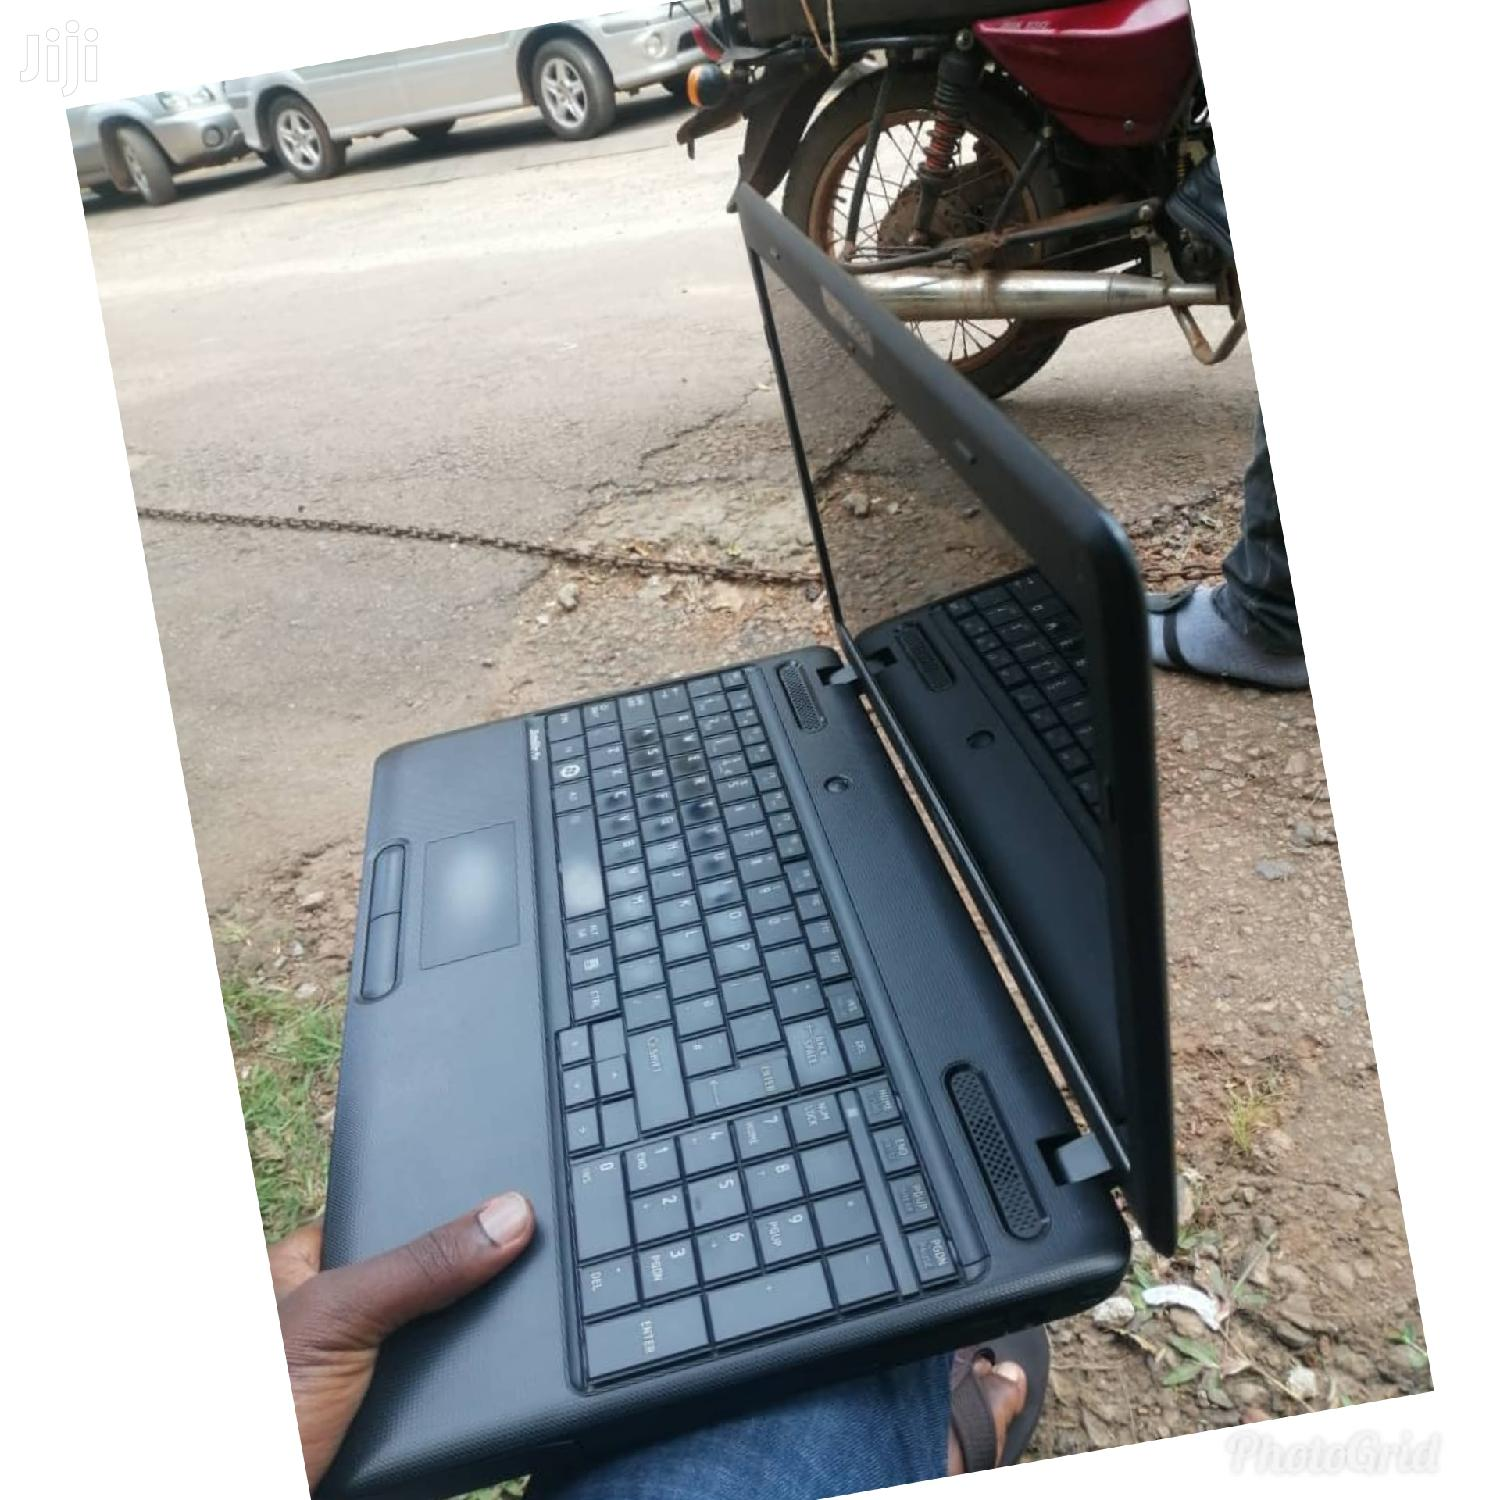 Laptop Toshiba Chromebook 2 4GB Intel Core I3 HDD 320GB | Laptops & Computers for sale in Kampala, Central Region, Uganda